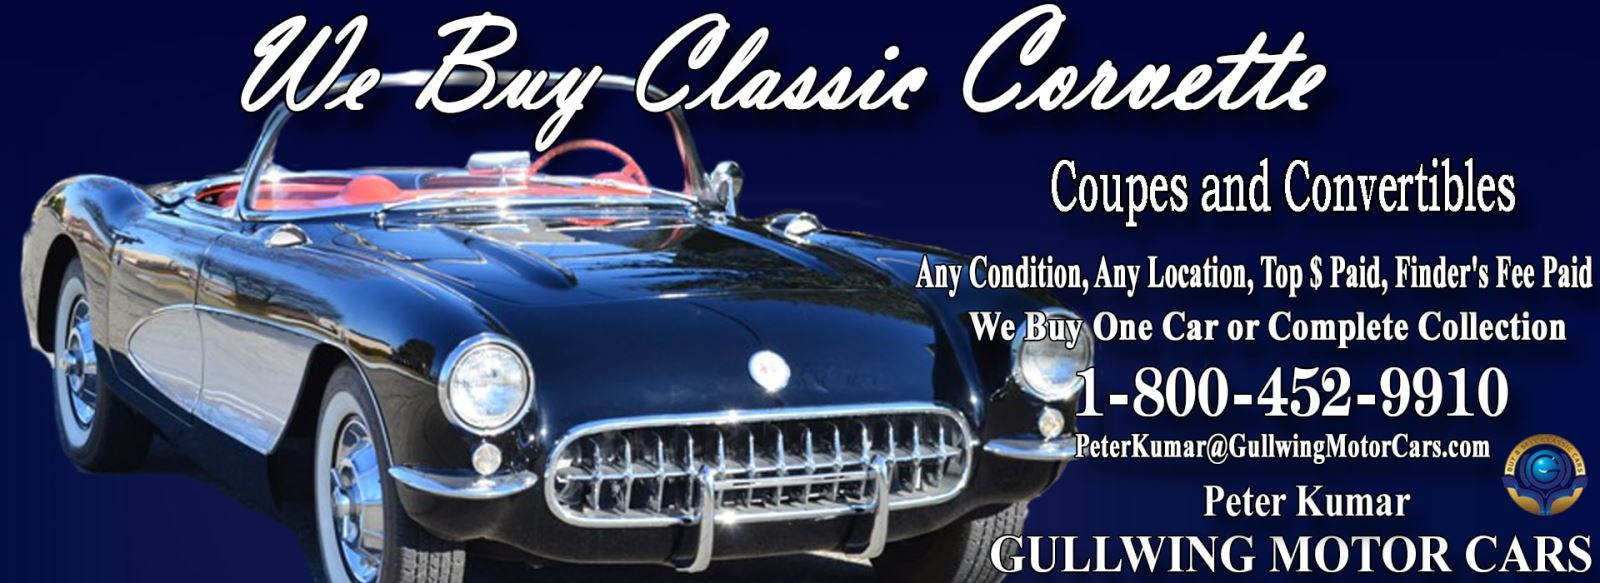 Classic Corvette for sale, we buy vintage Corvette. Call Peter Kumar. Gullwing Motor